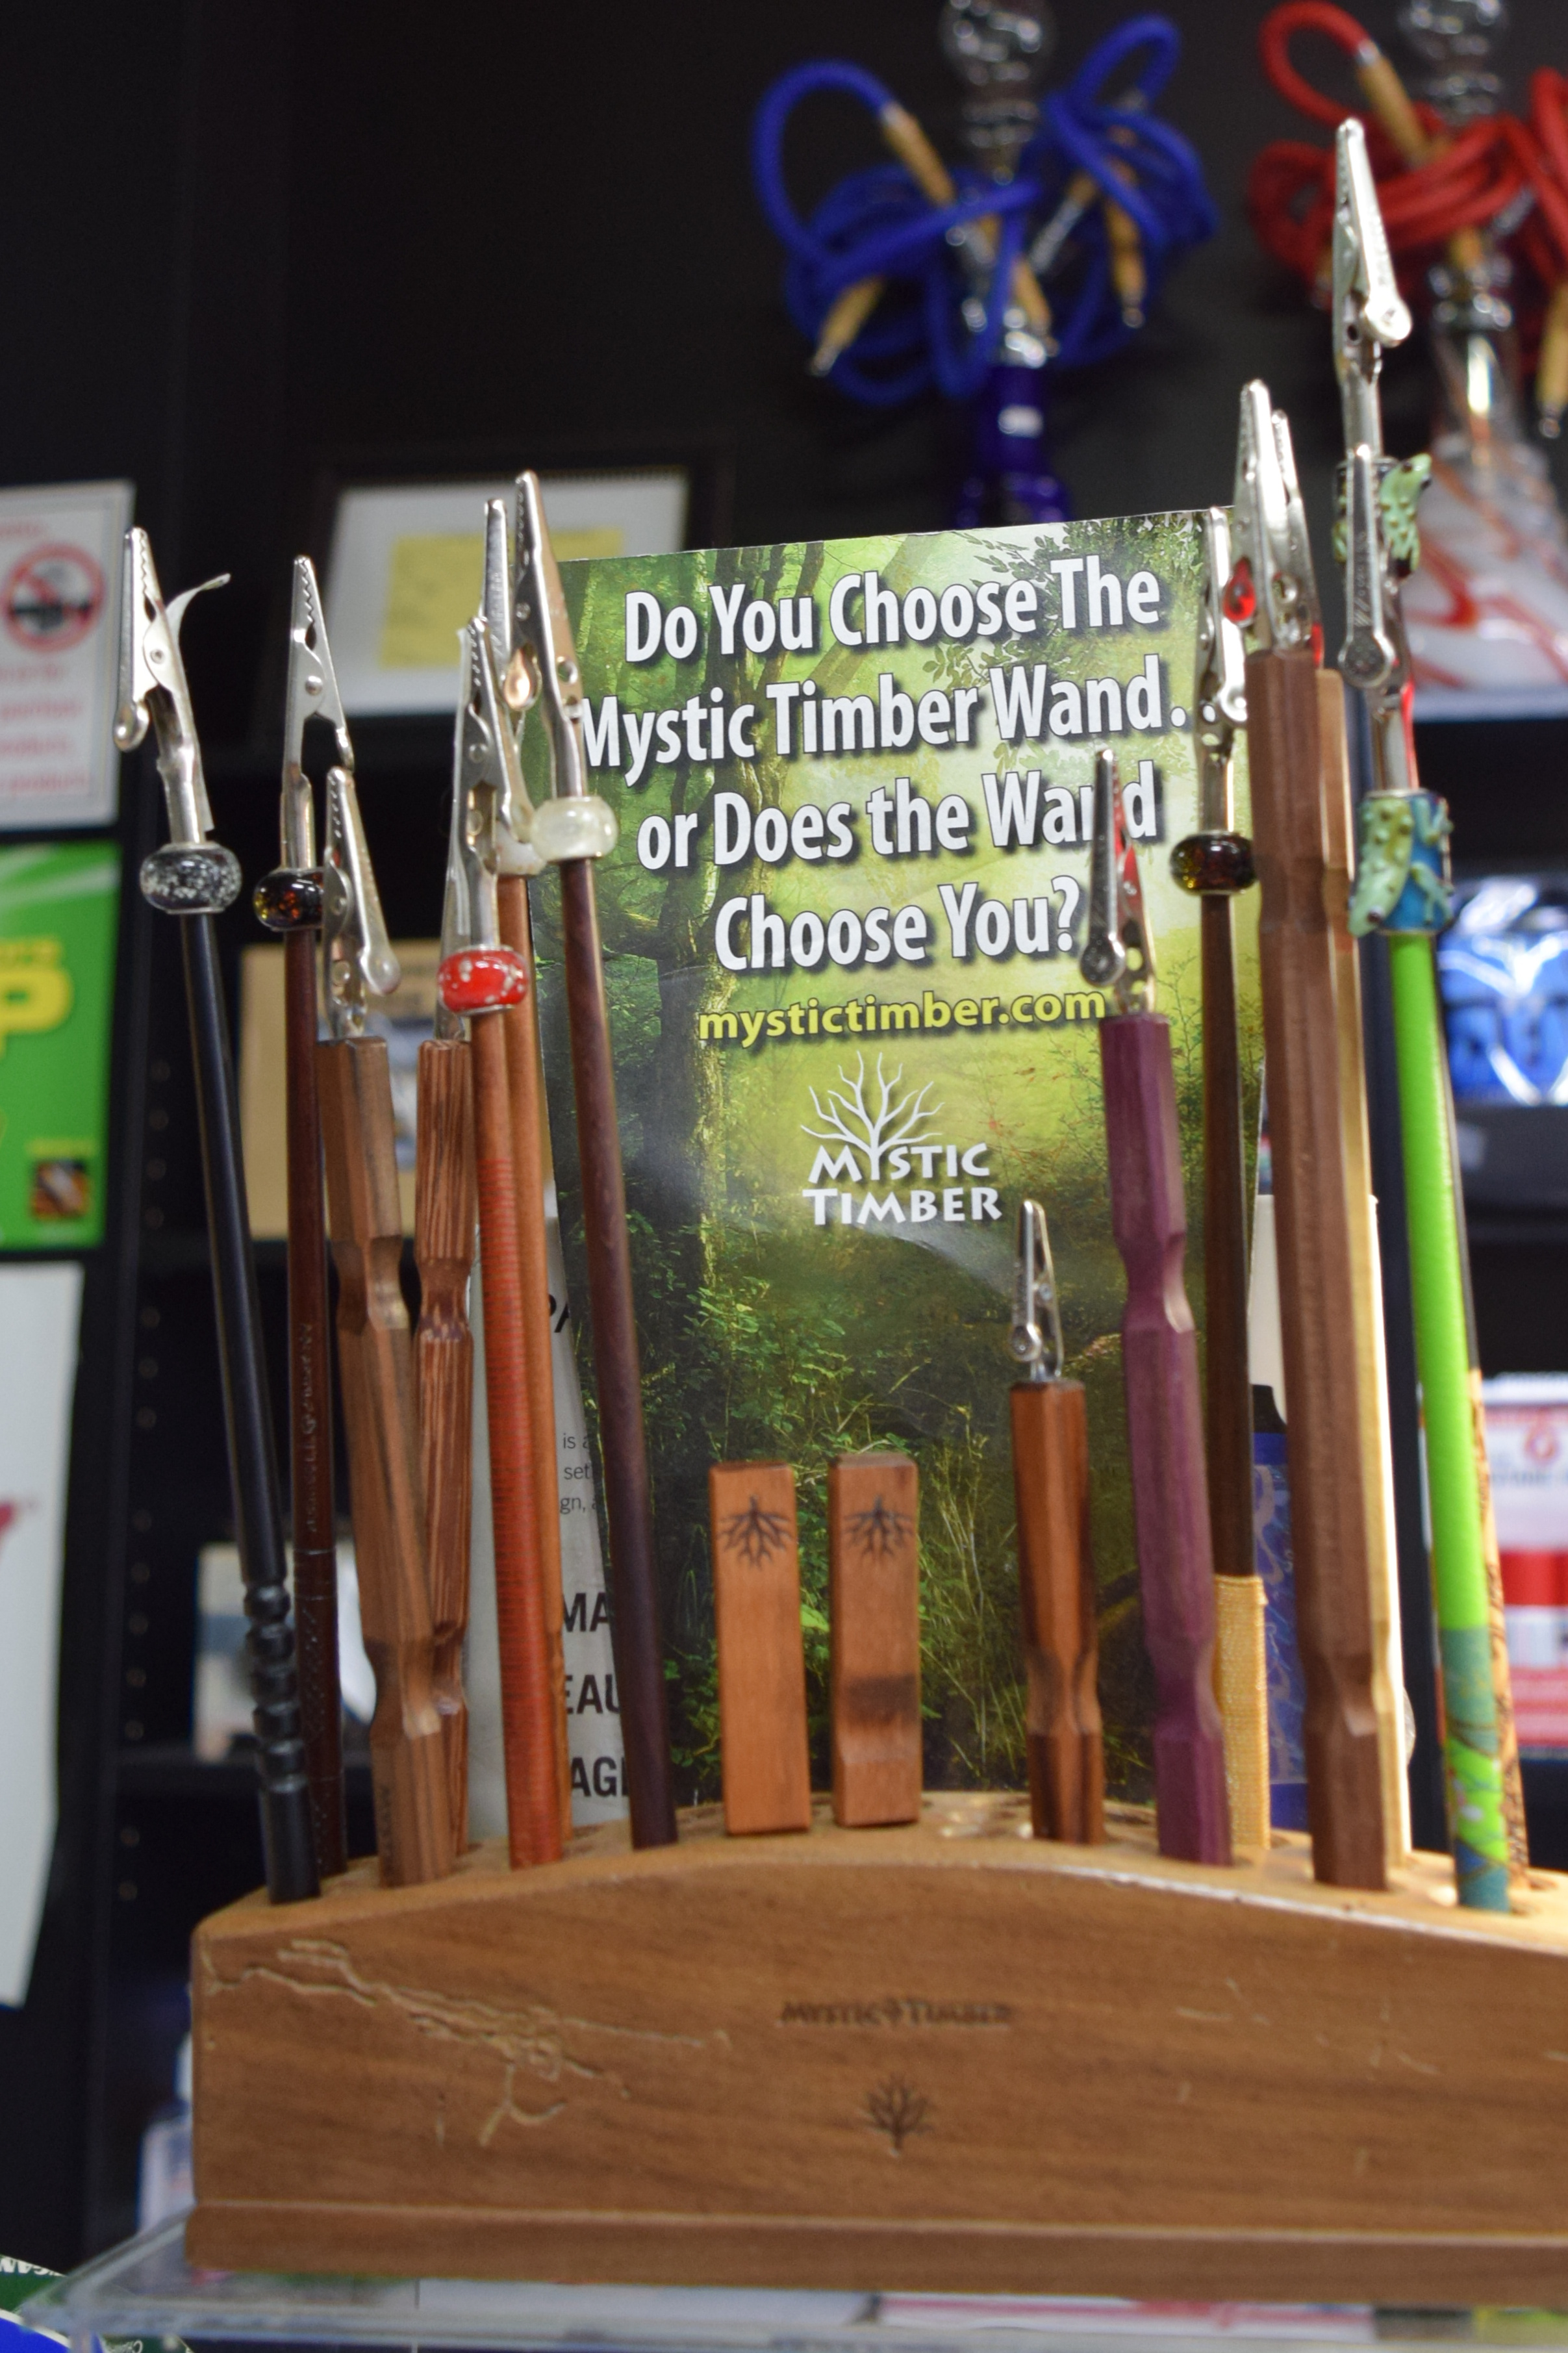 Mystic Timber smoker wands http://mystictimber.com